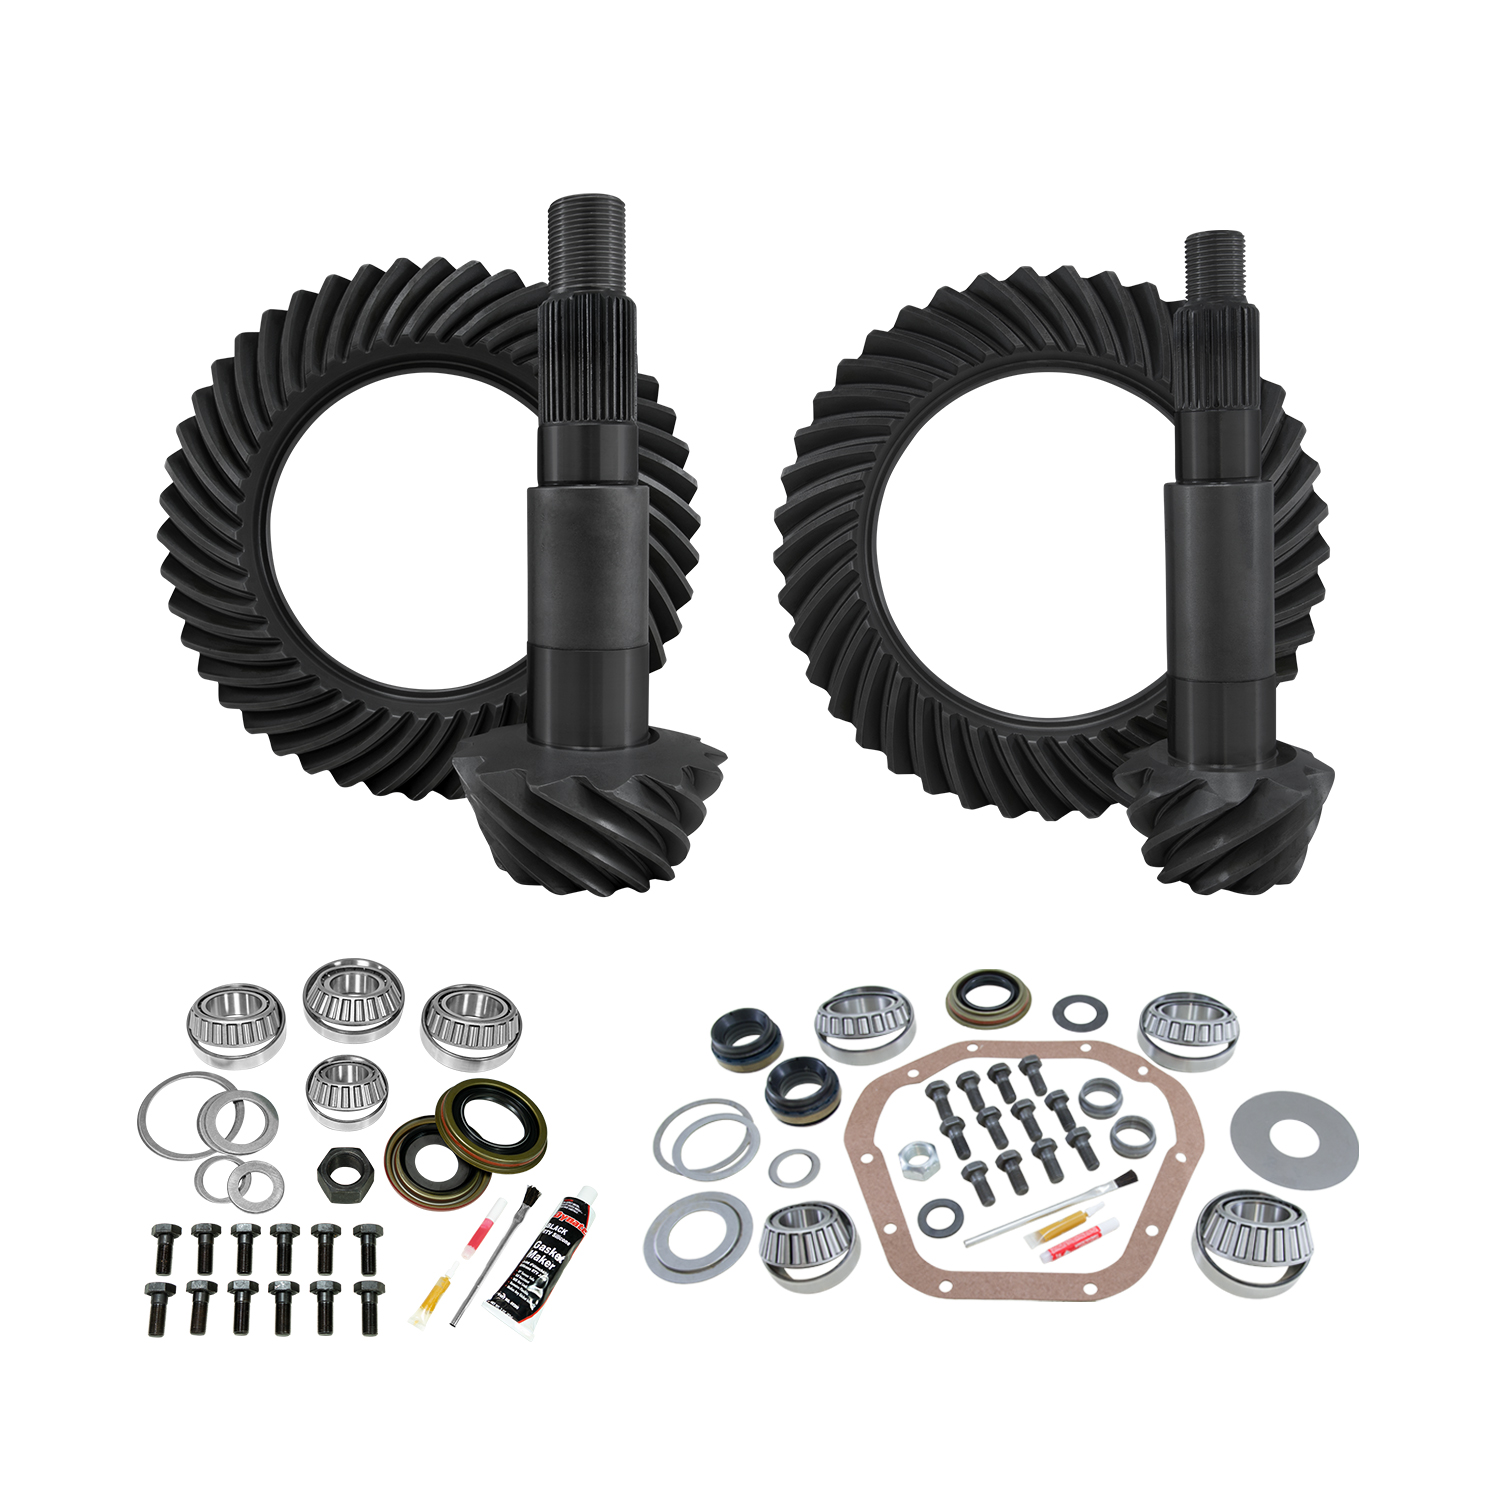 YGK144 - Yukon Complete Gear and Kit Pakage for F350, Dana 80 Thin Rear & Dana 60 Front, 3:73 Gear Ratio